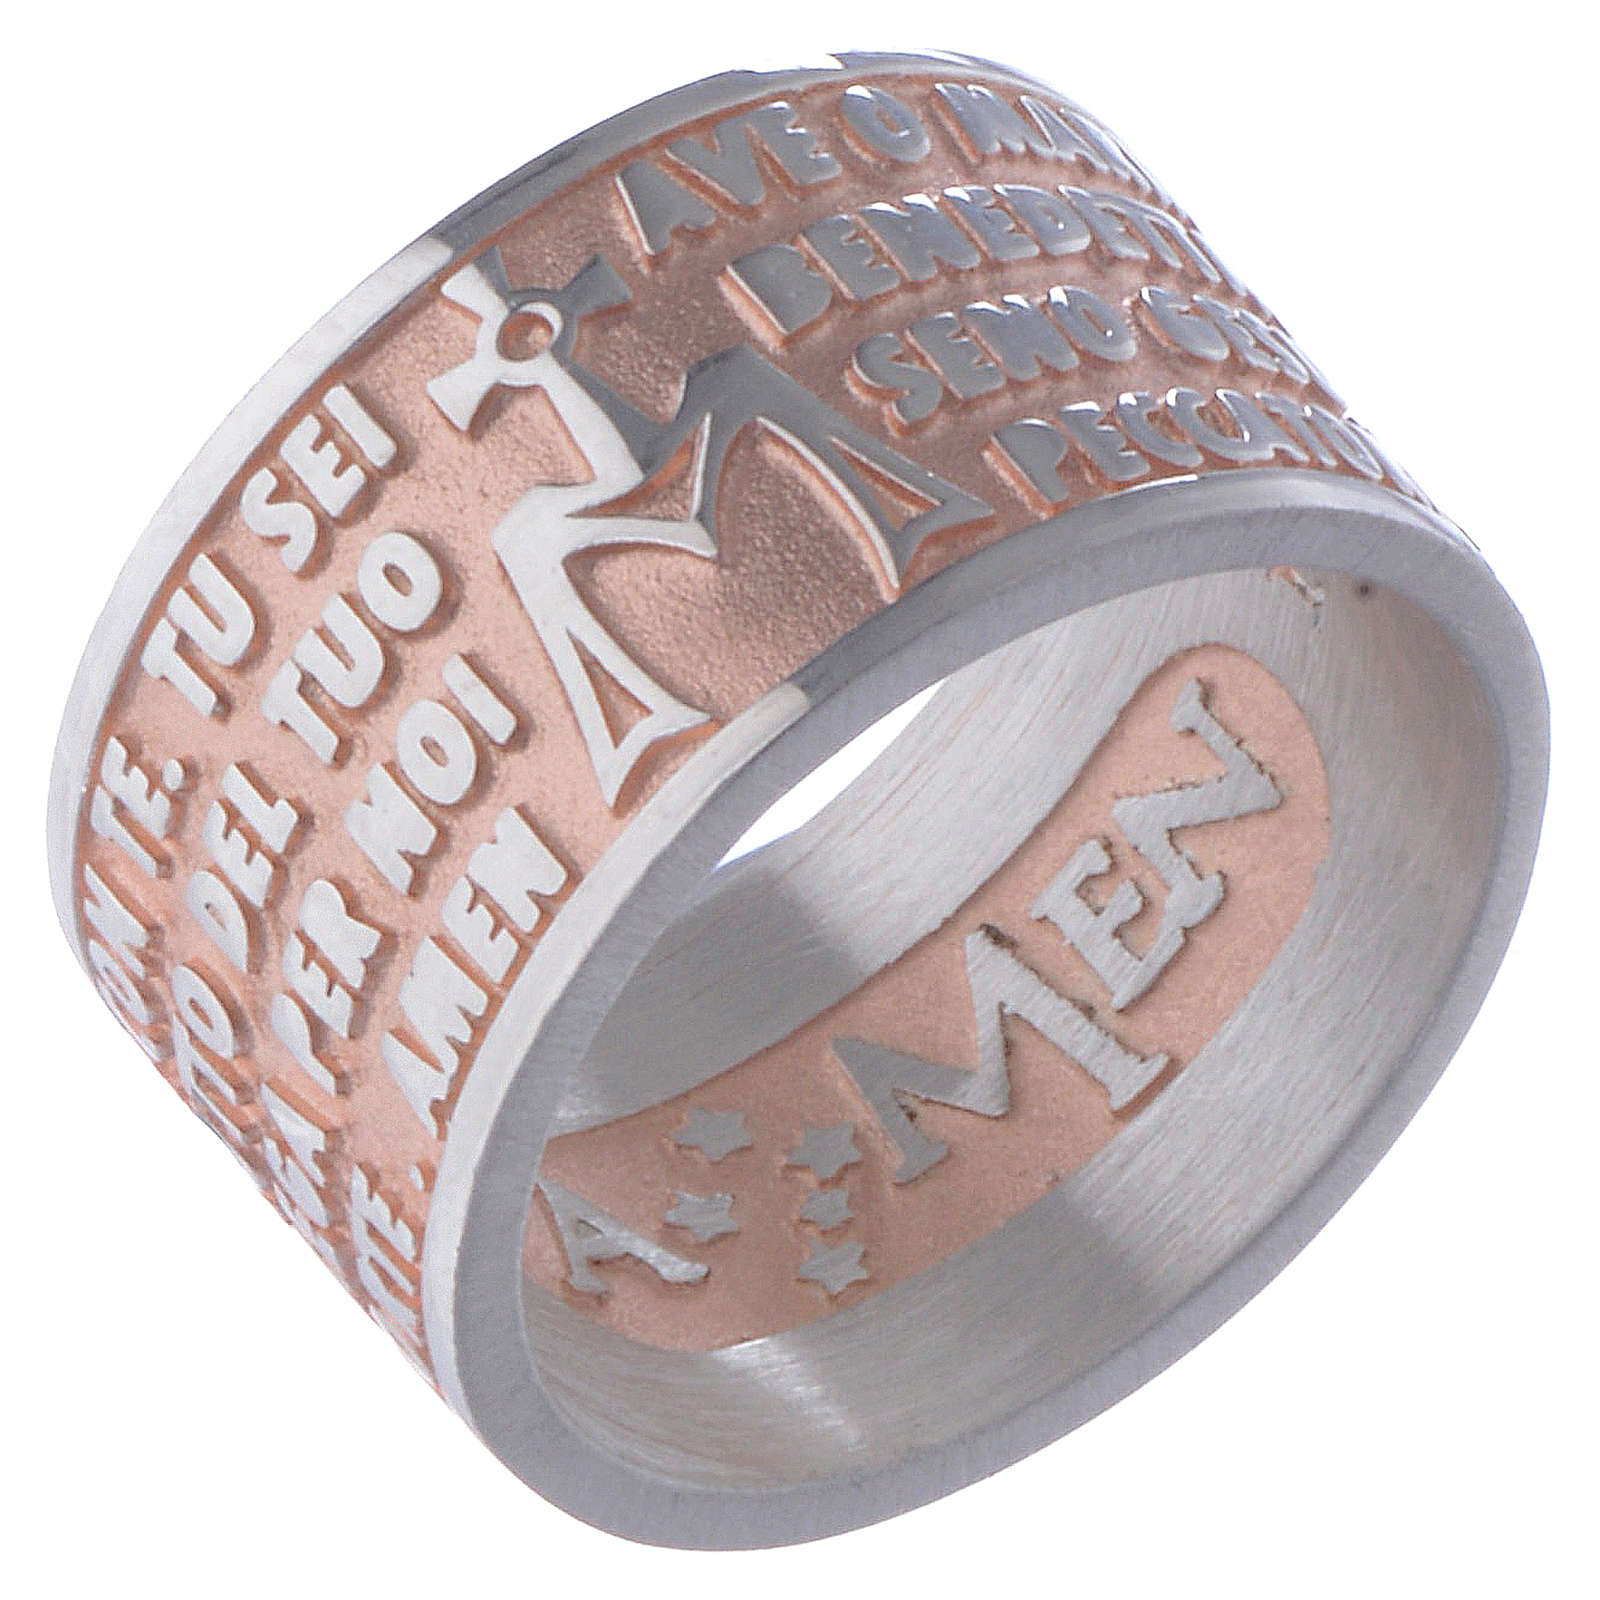 Hail Mary prayer ring in silver rosé AMEN 3